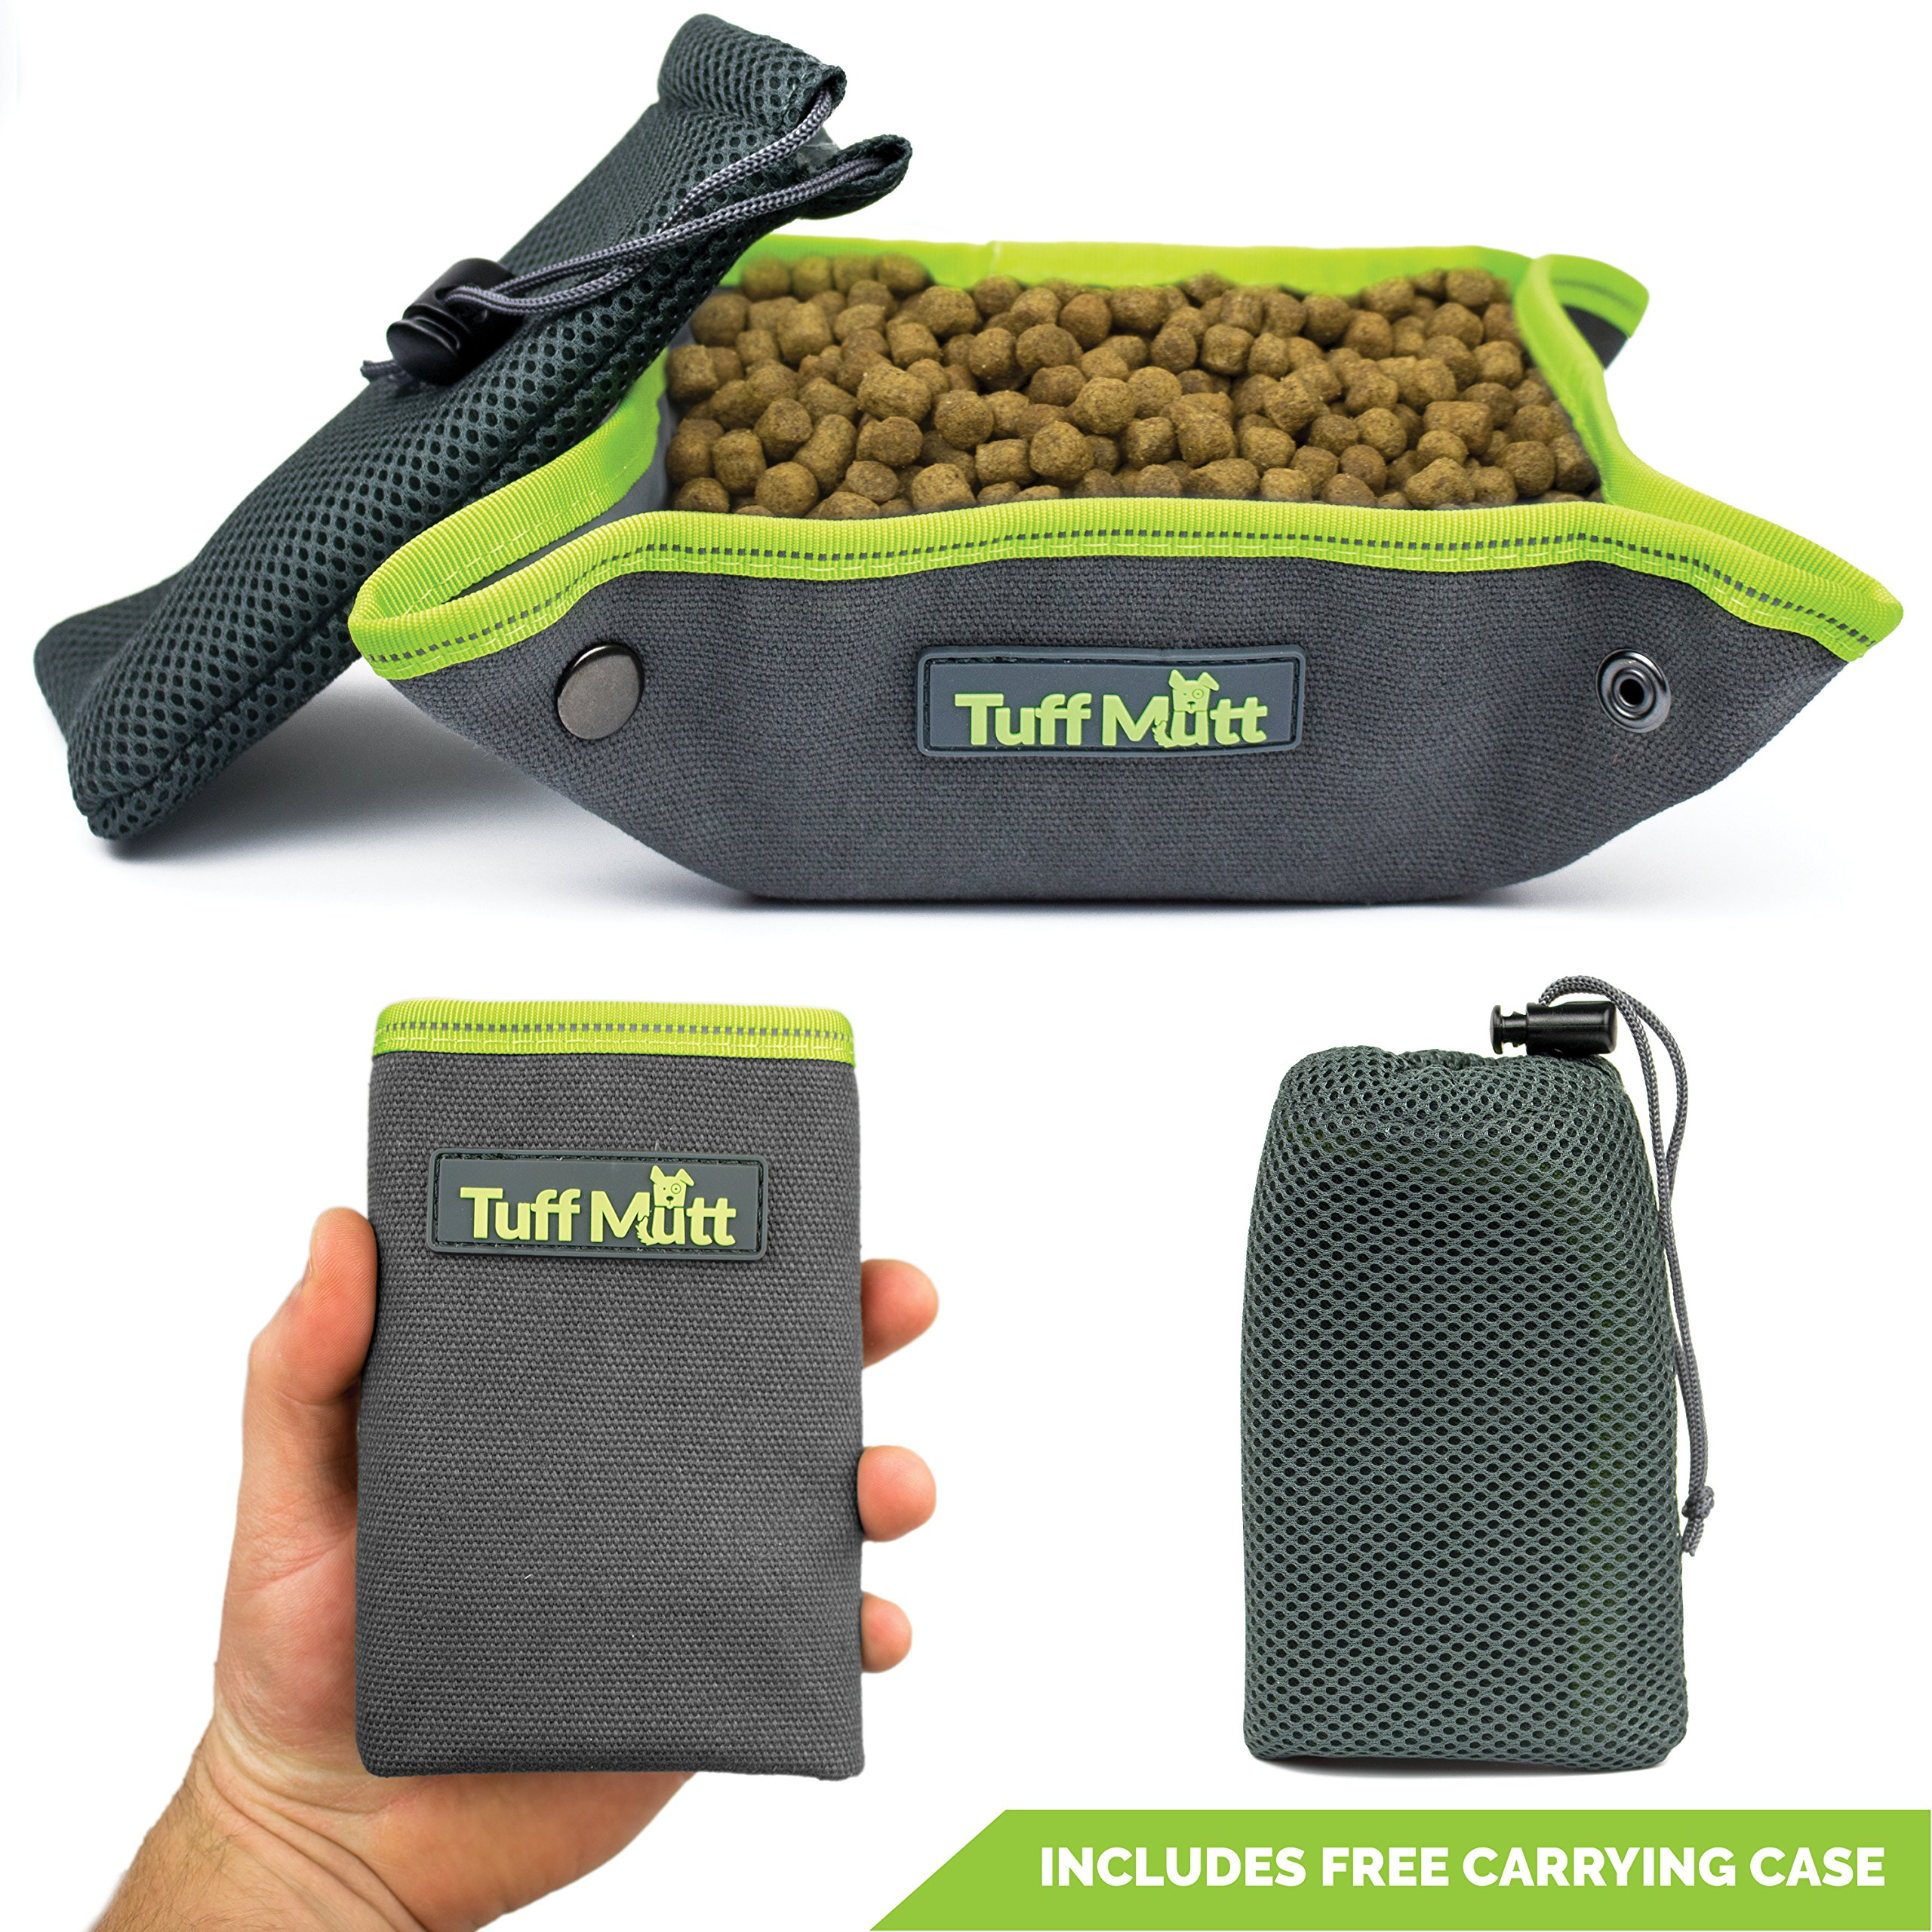 Tuff Mutt Collapsible Canvas Dog Bowl, Portable for Easy Travel, Foldable and Pocket Size for Running, Walking, Hiking, Camping, Waterproof Lining holds Food and Water, Reflective Trim, Dogs